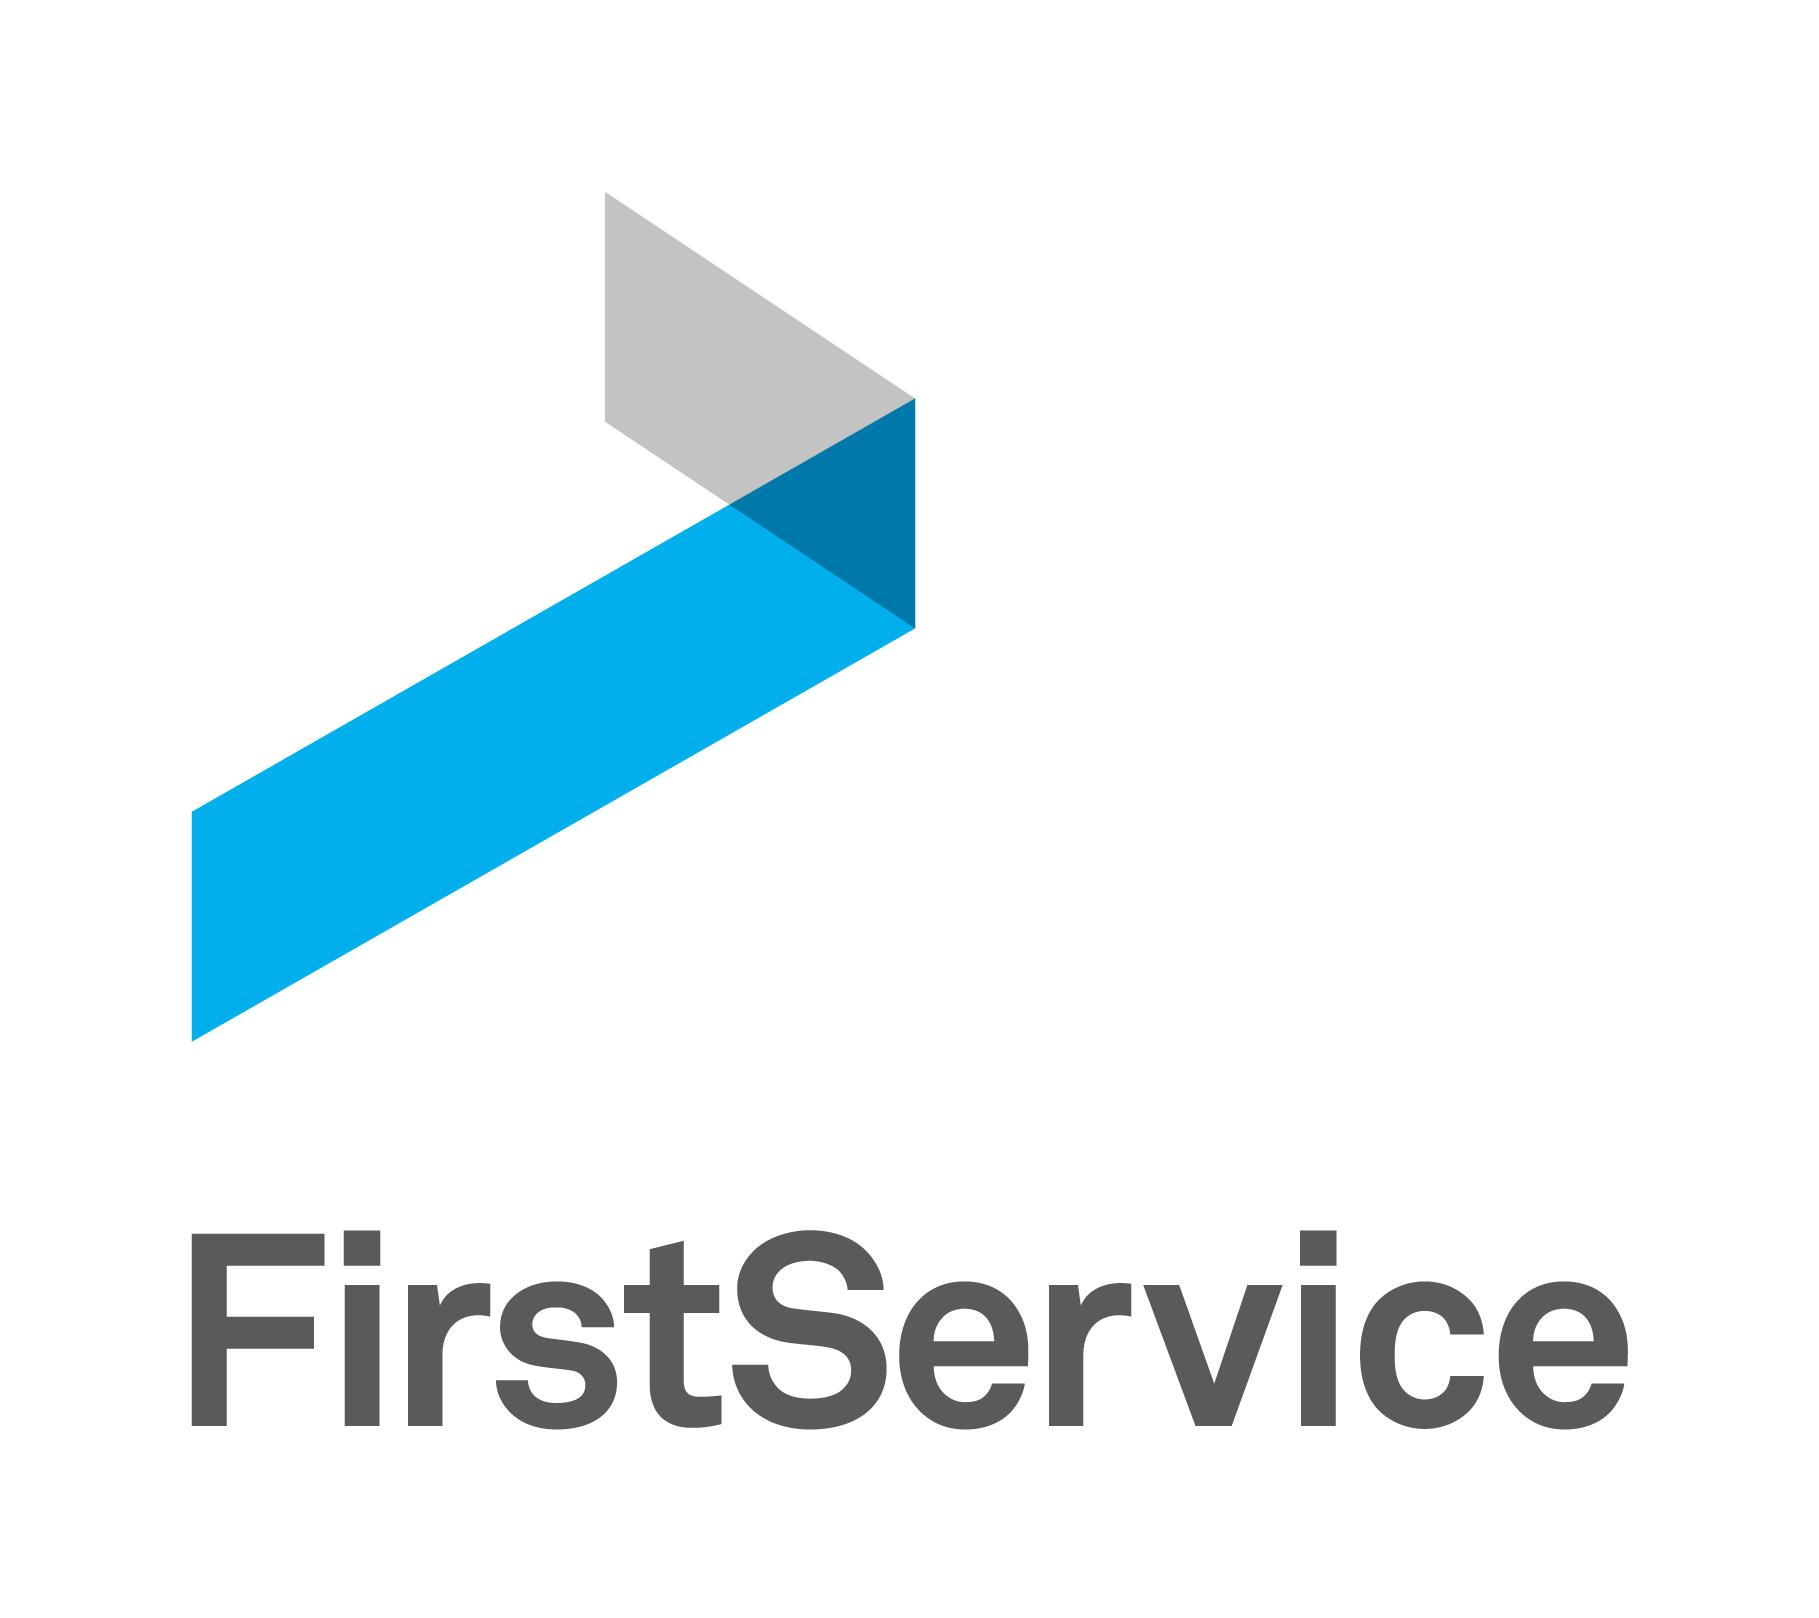 FirstService Corporation Completes US$150 Million Private Placement of Common Shares